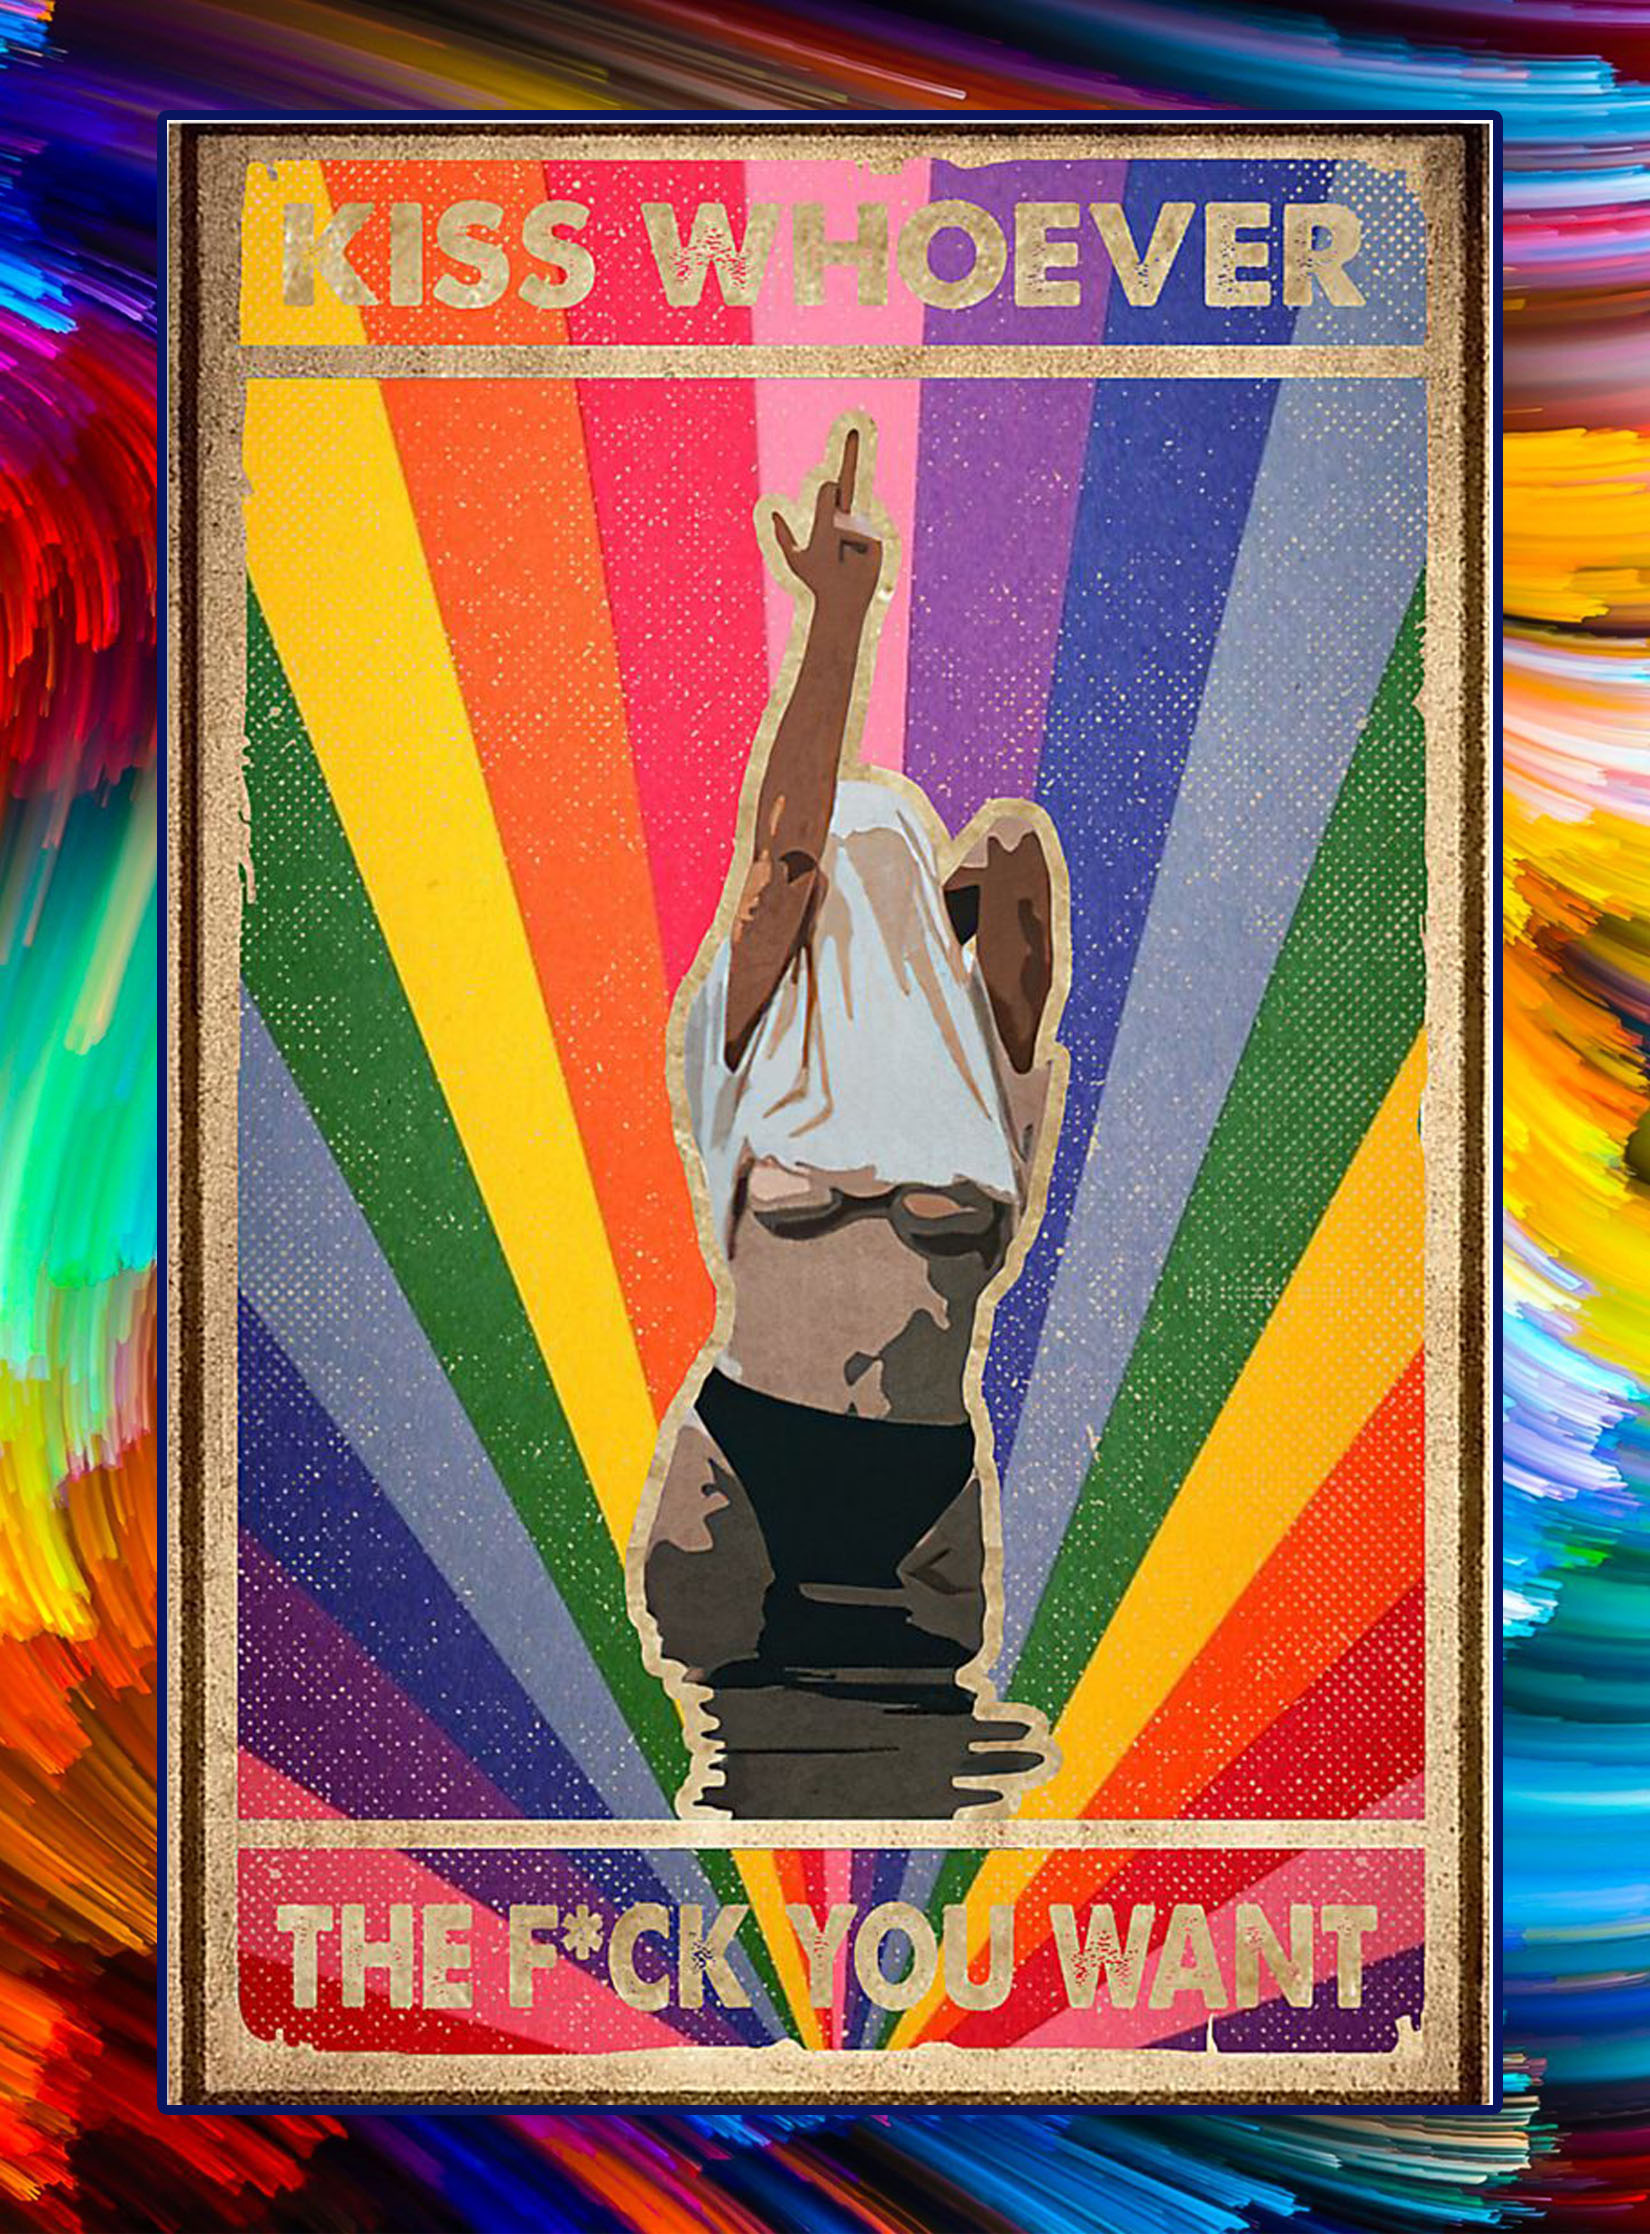 Lgbt pride kiss whoever the fuck you want poster